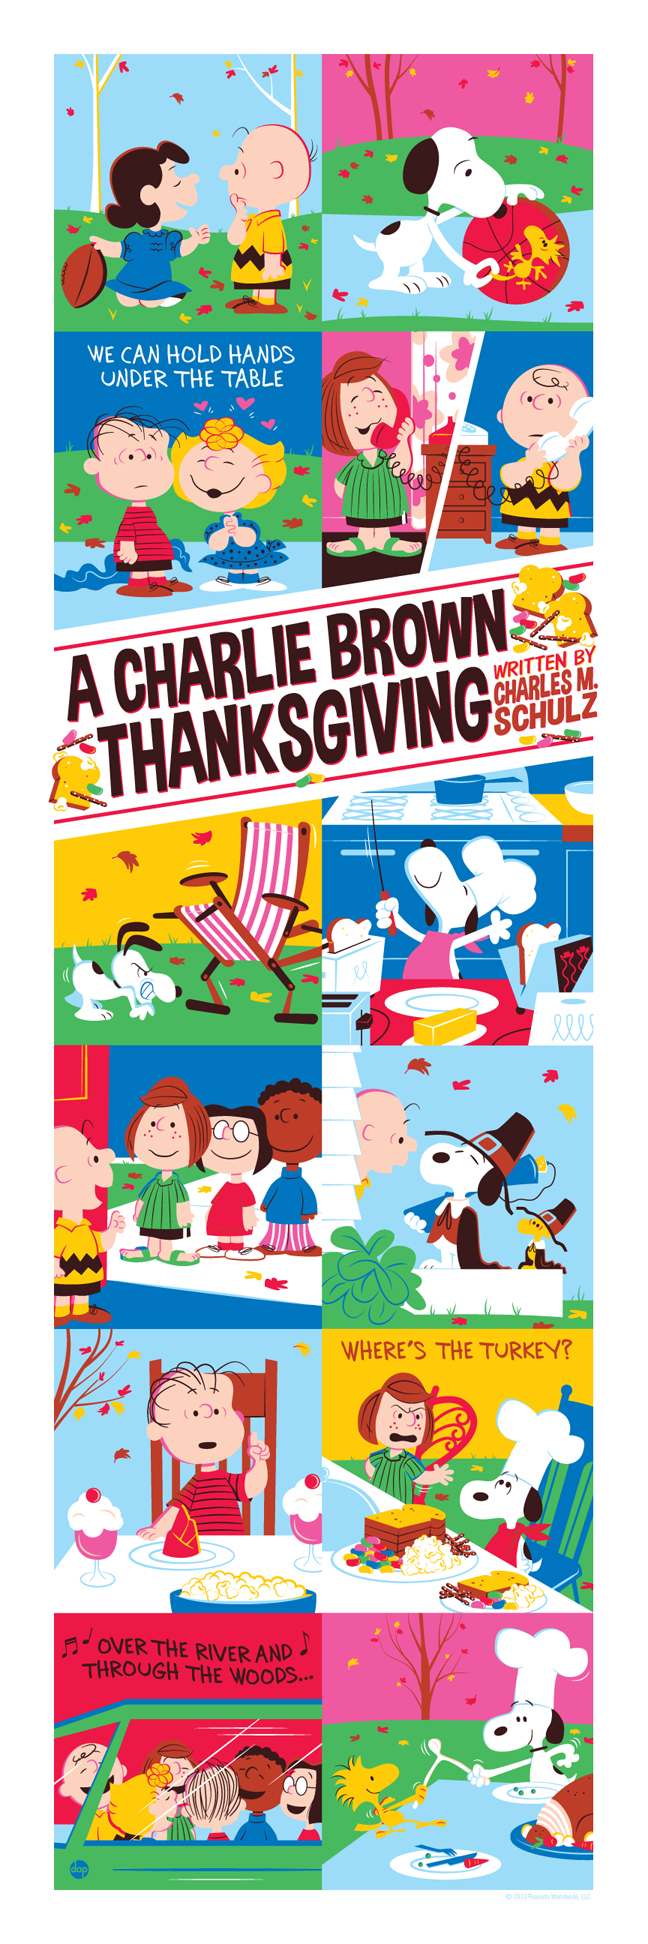 perillo-A-Charlie-Brown-Thanksgiving-variant